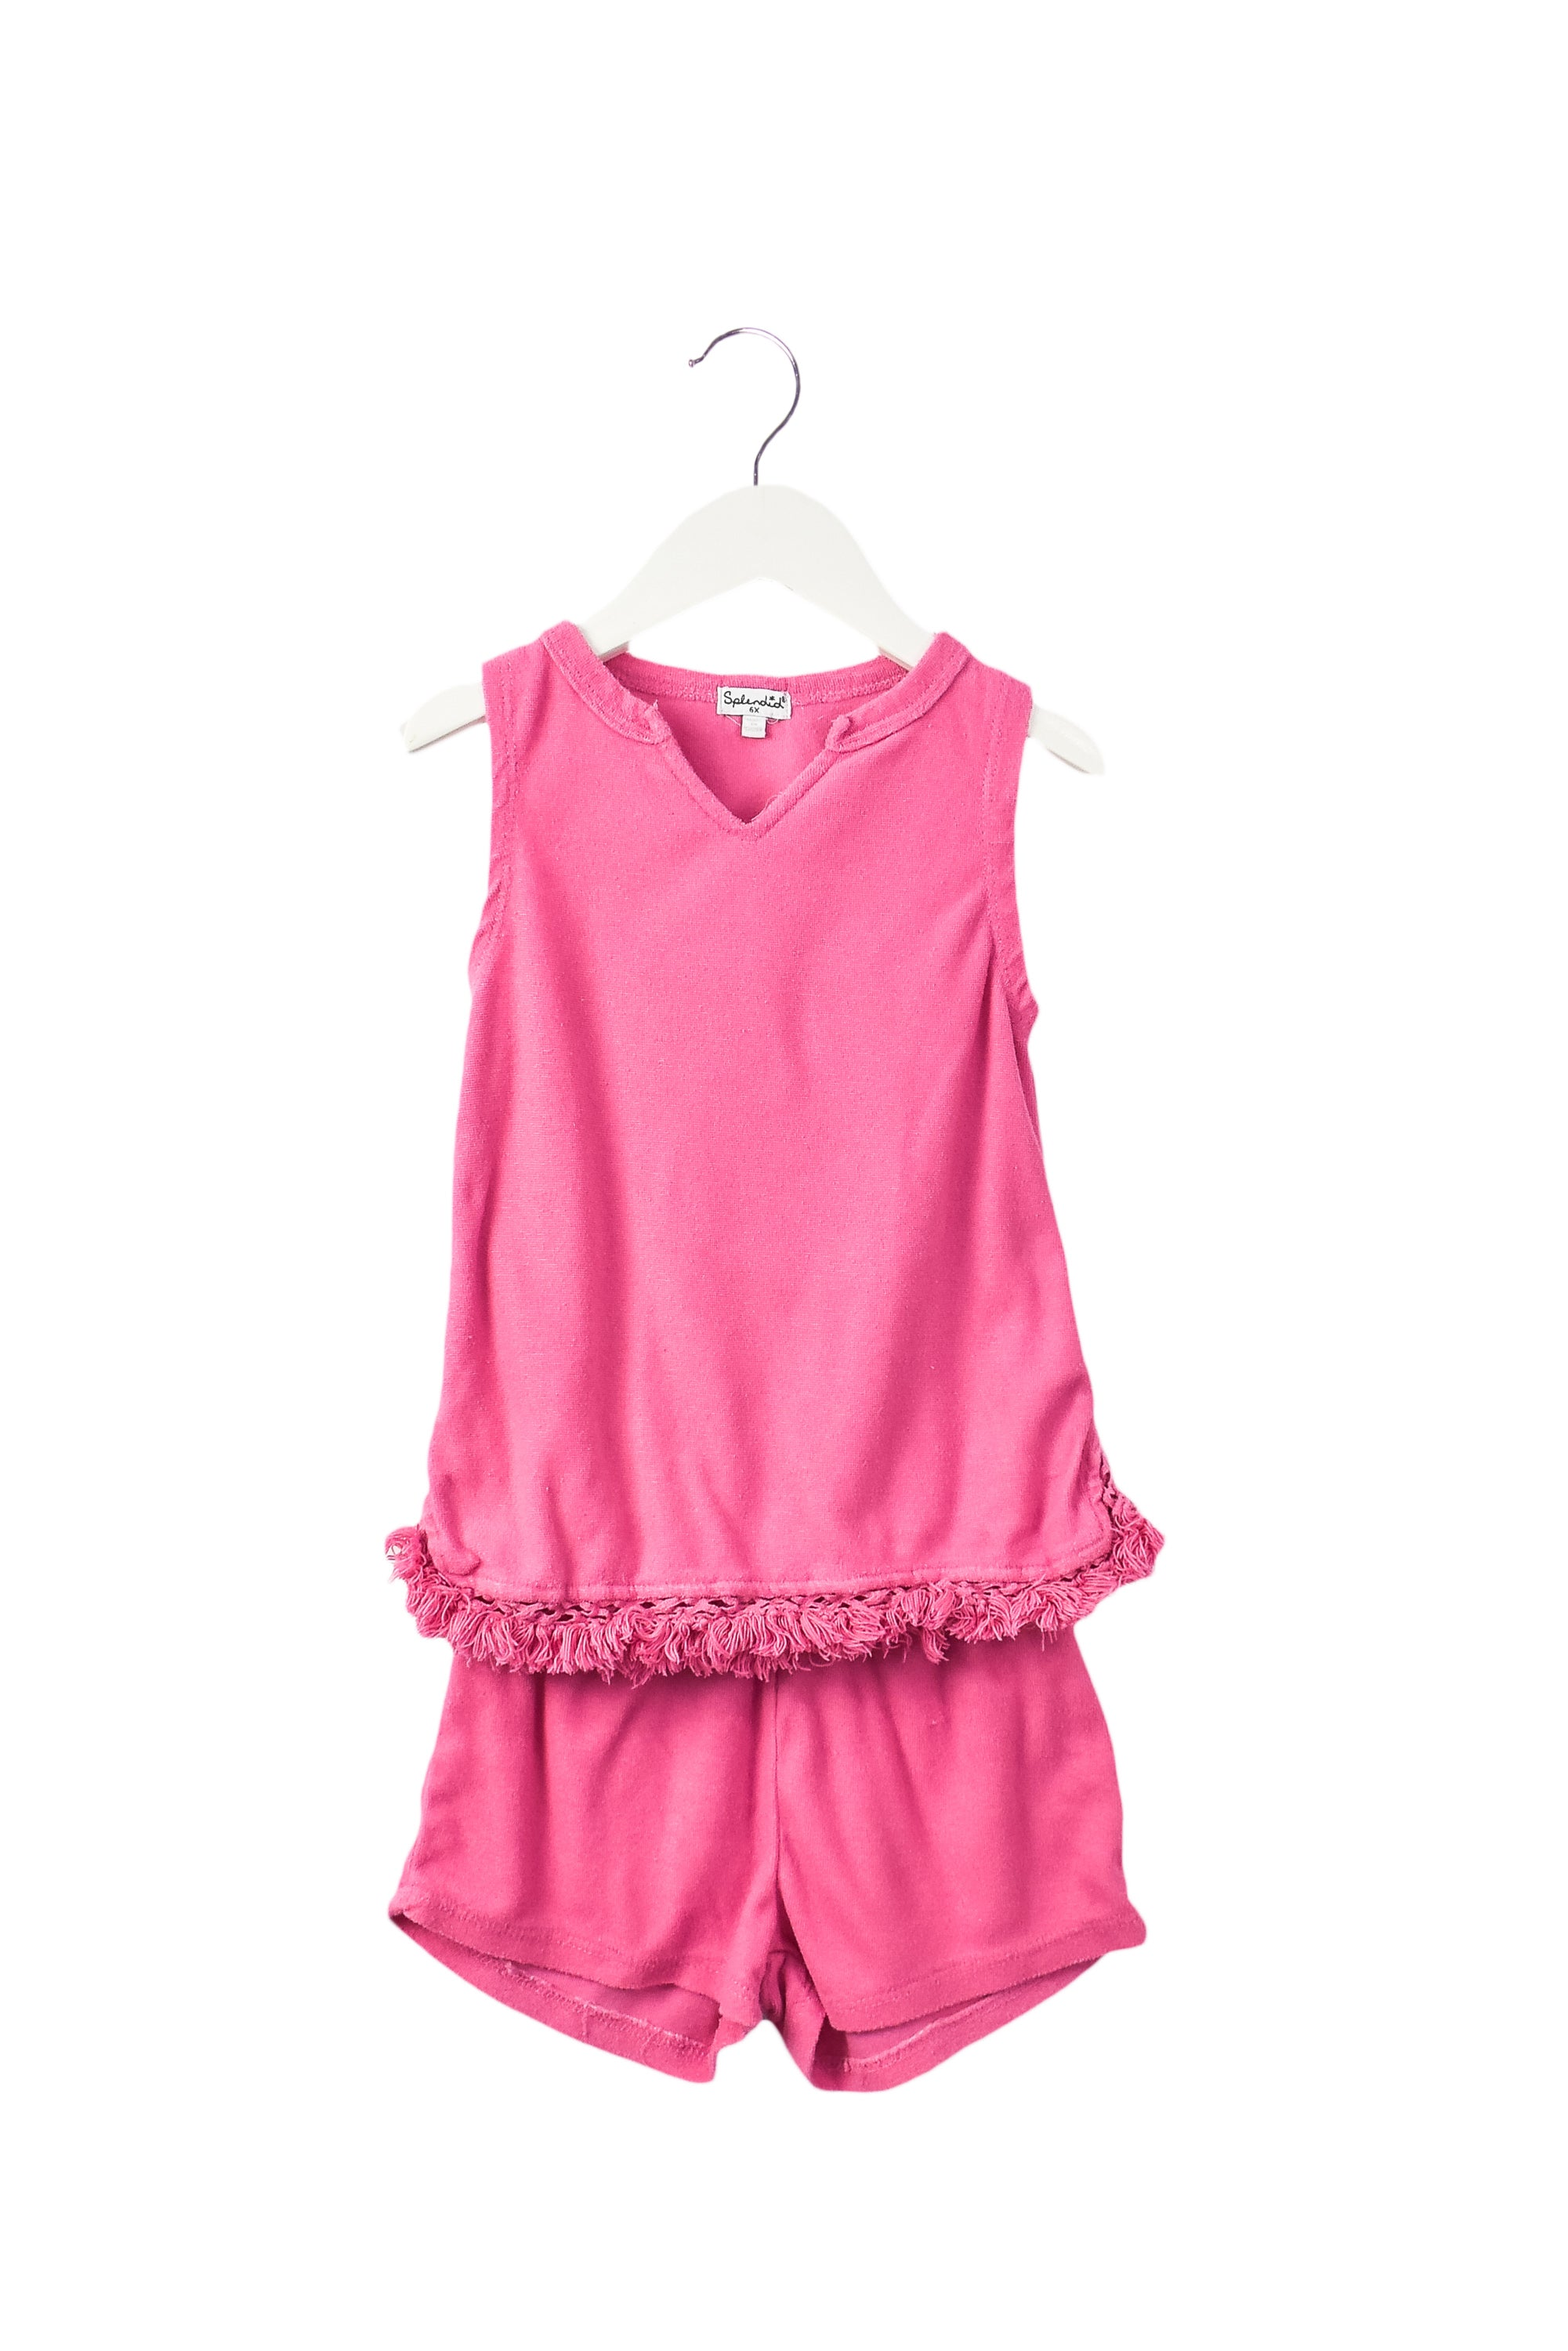 10033637 Splendid Kids~Top and Shorts Set 6T at Retykle